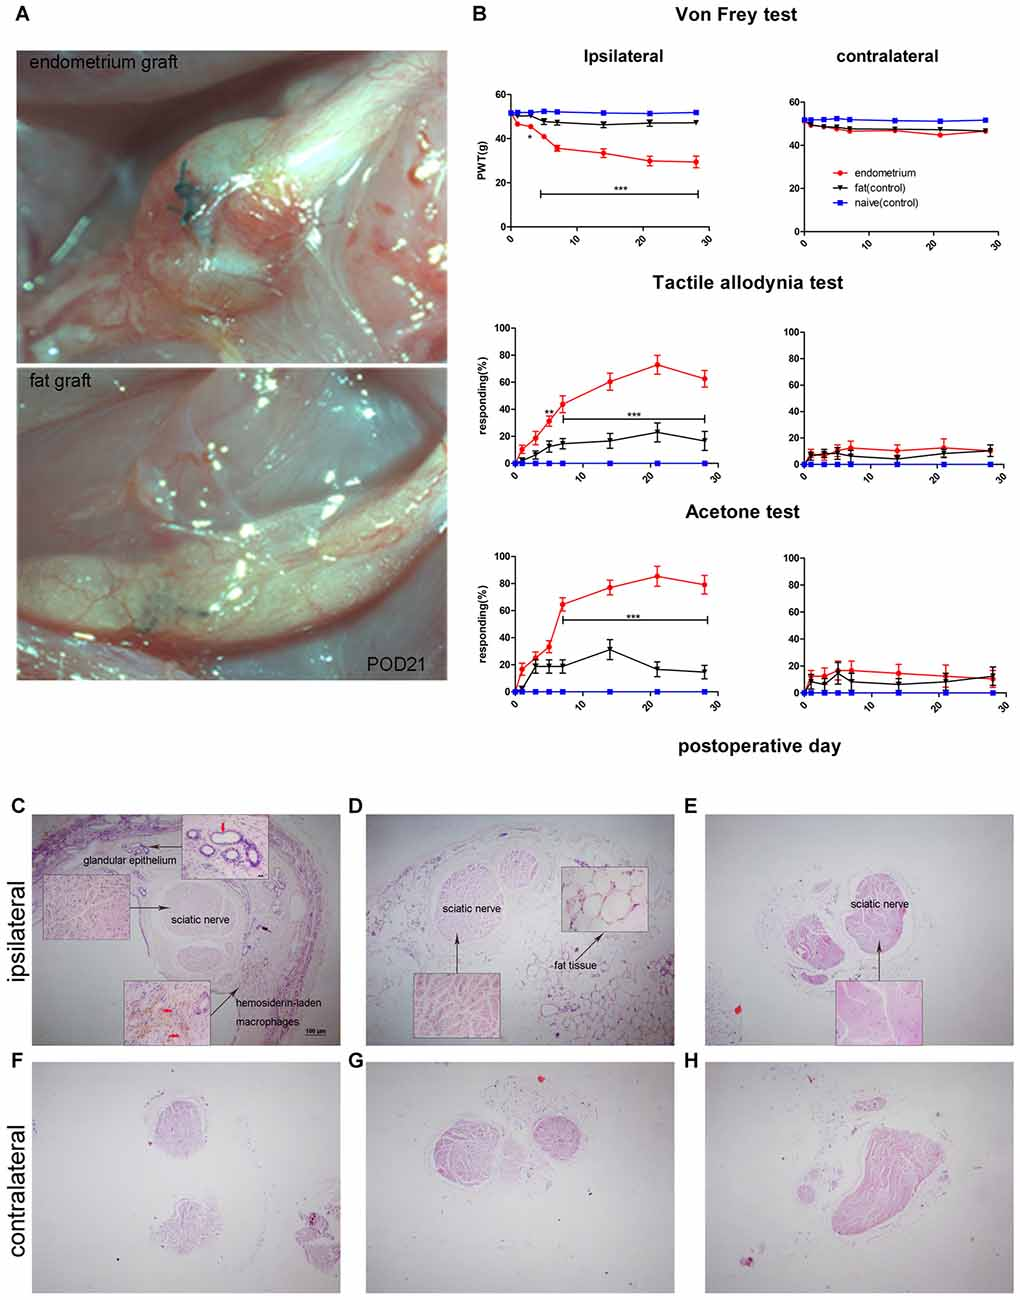 Frontiers | Fractalkine/CX3CR1 Contributes to Endometriosis